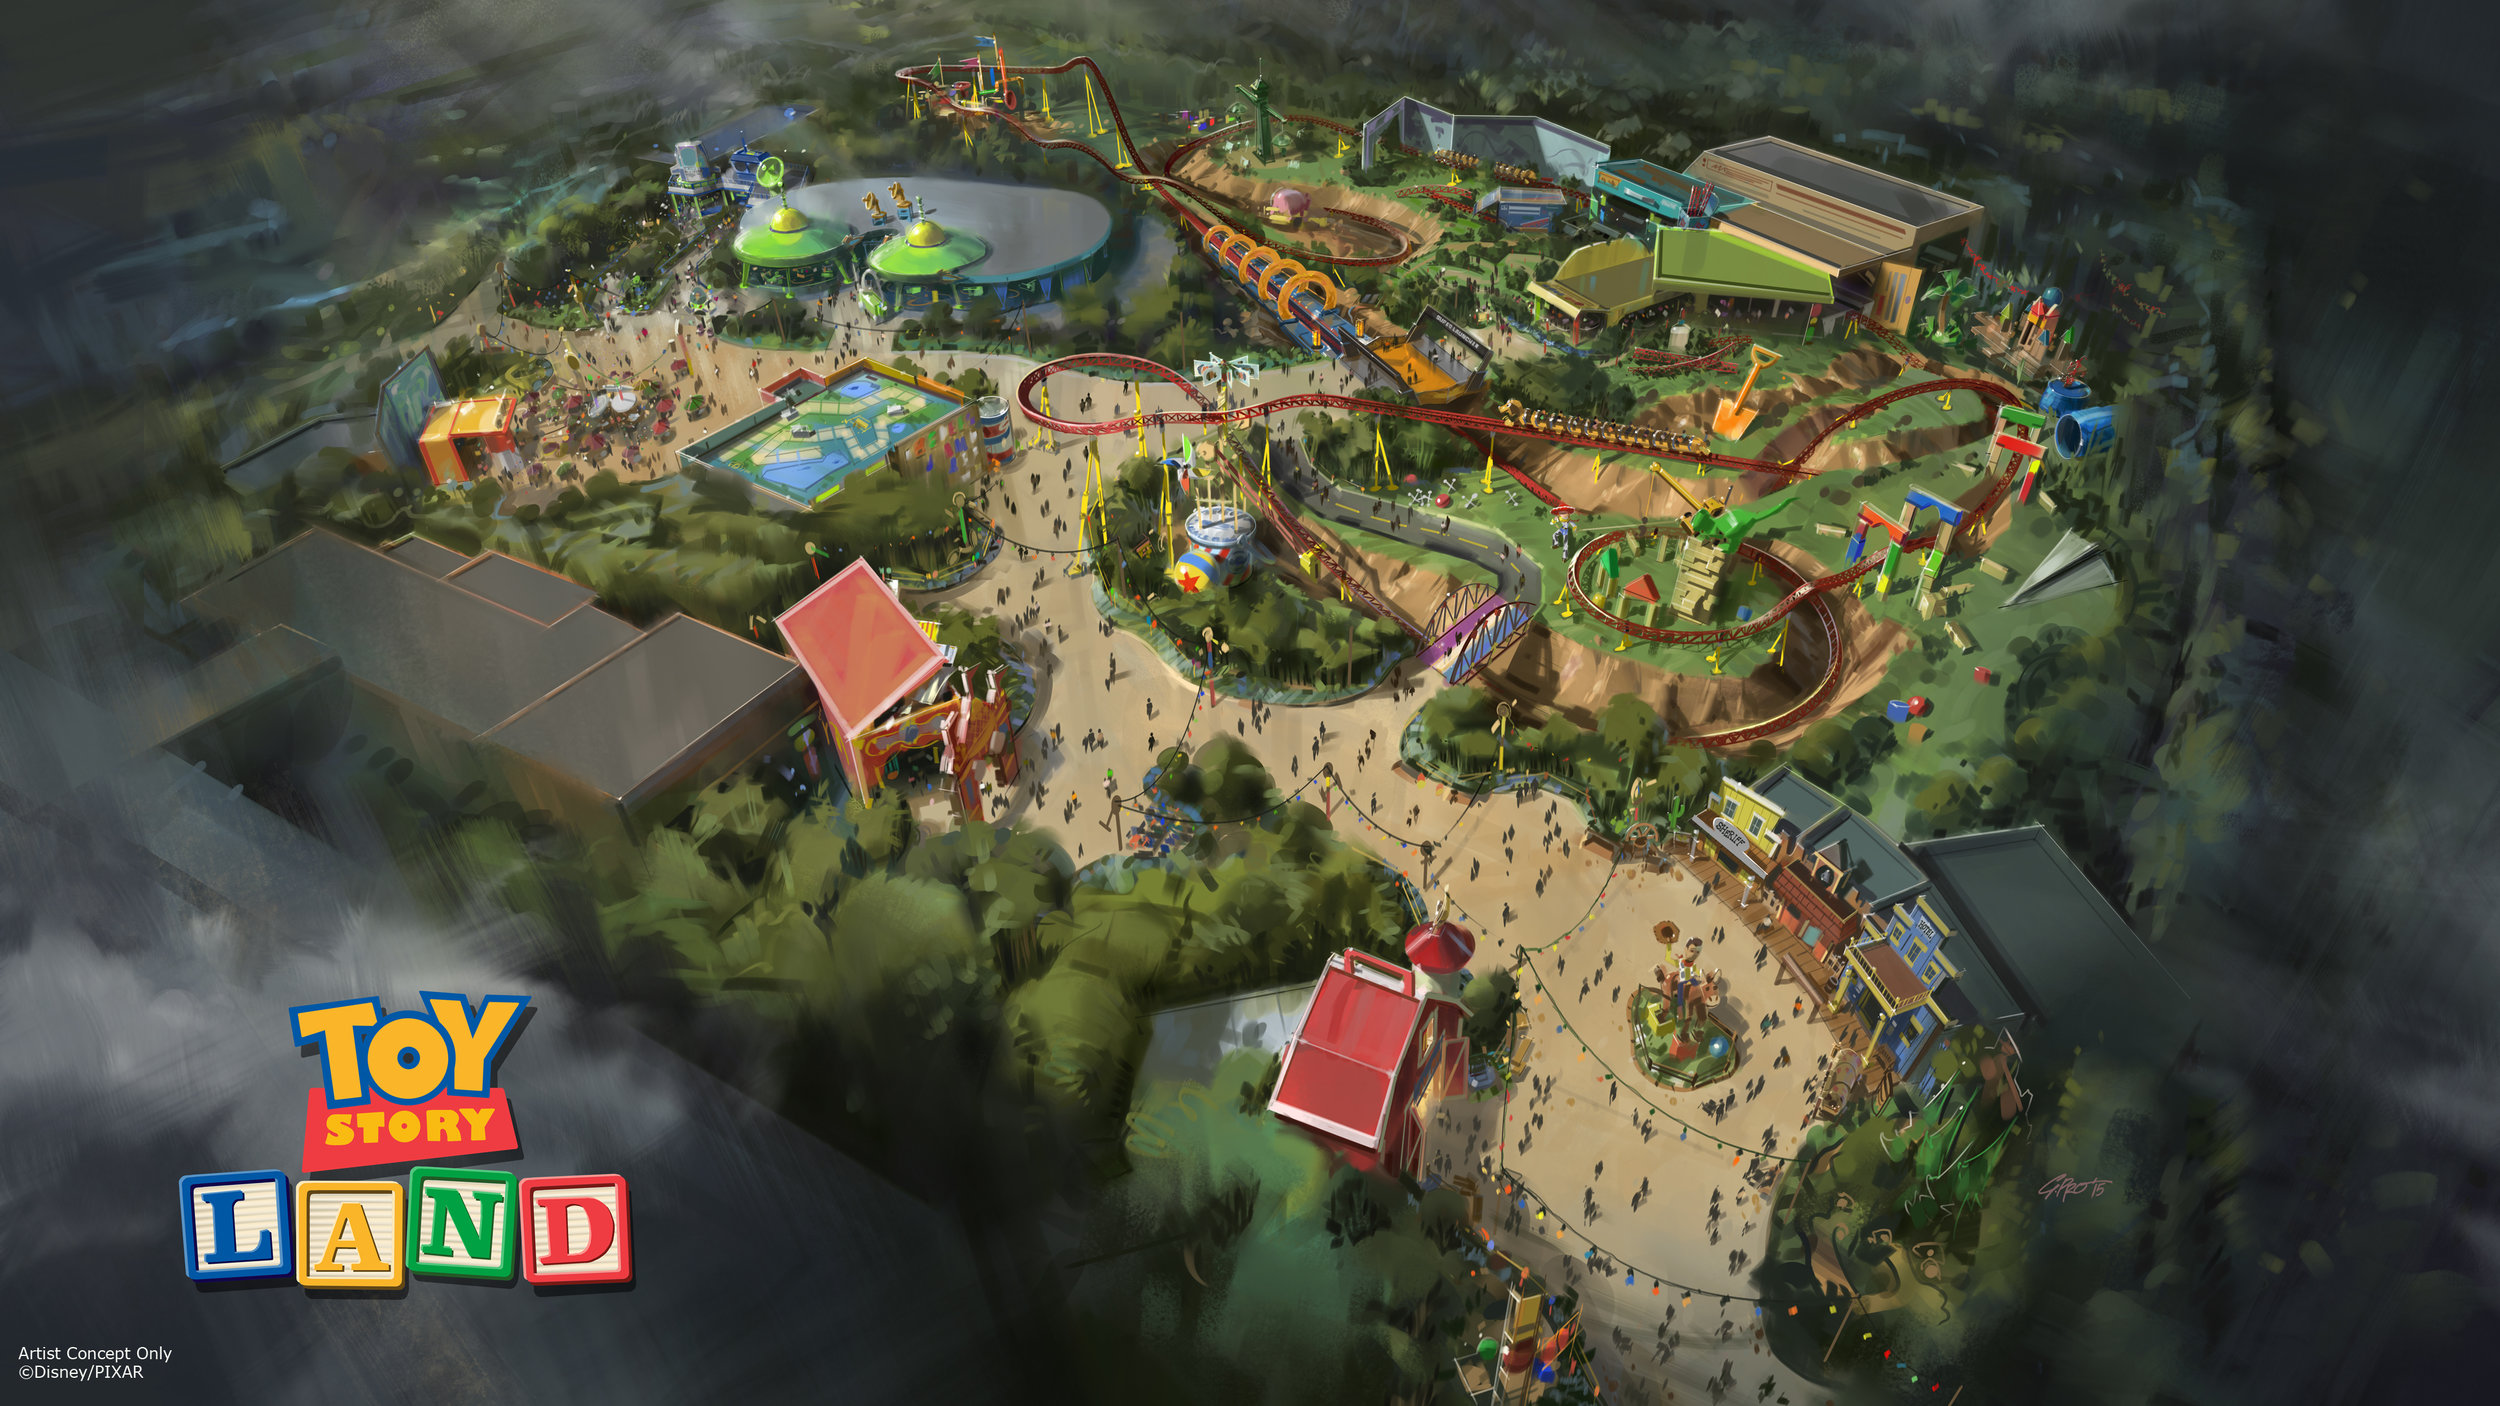 Toy Story Land opens June 30, 2018